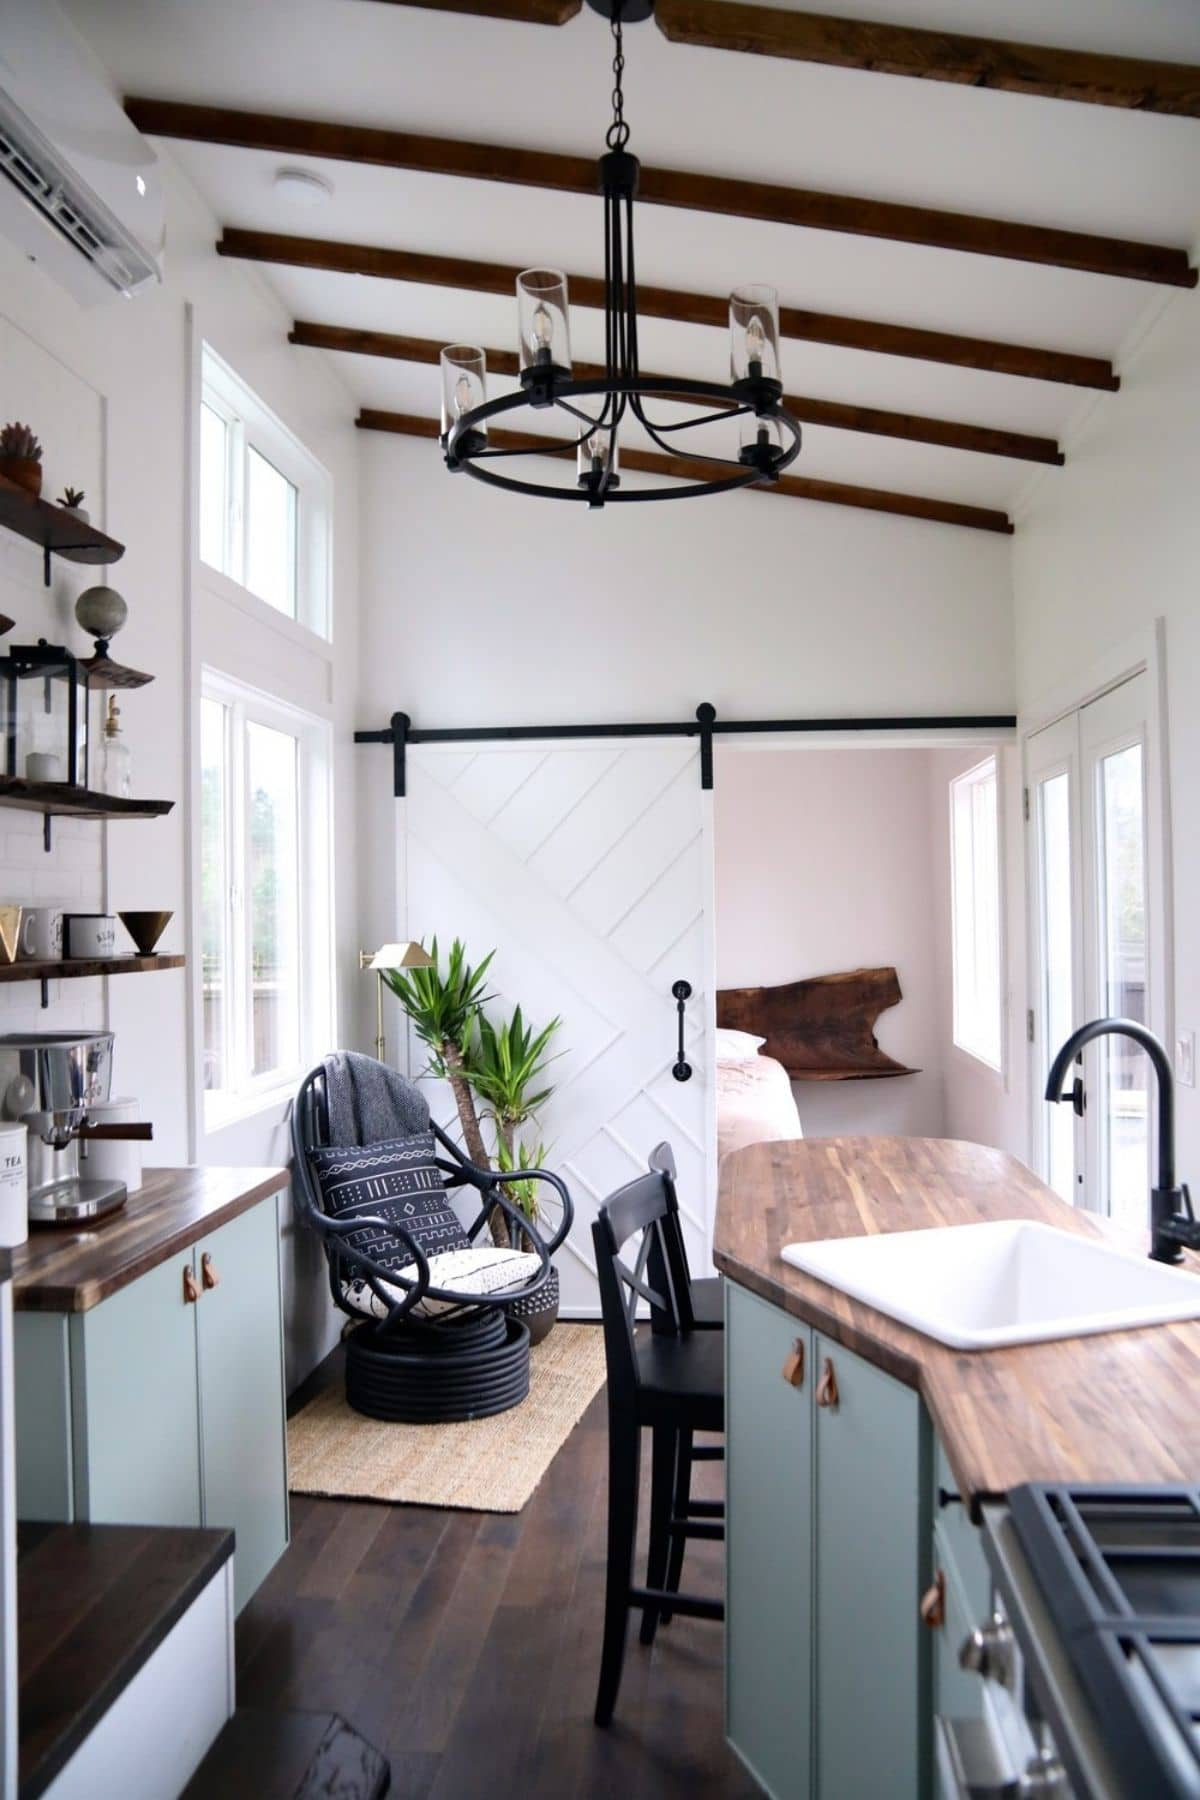 White kitchne sink at angle in foregruond with barn door to room in background